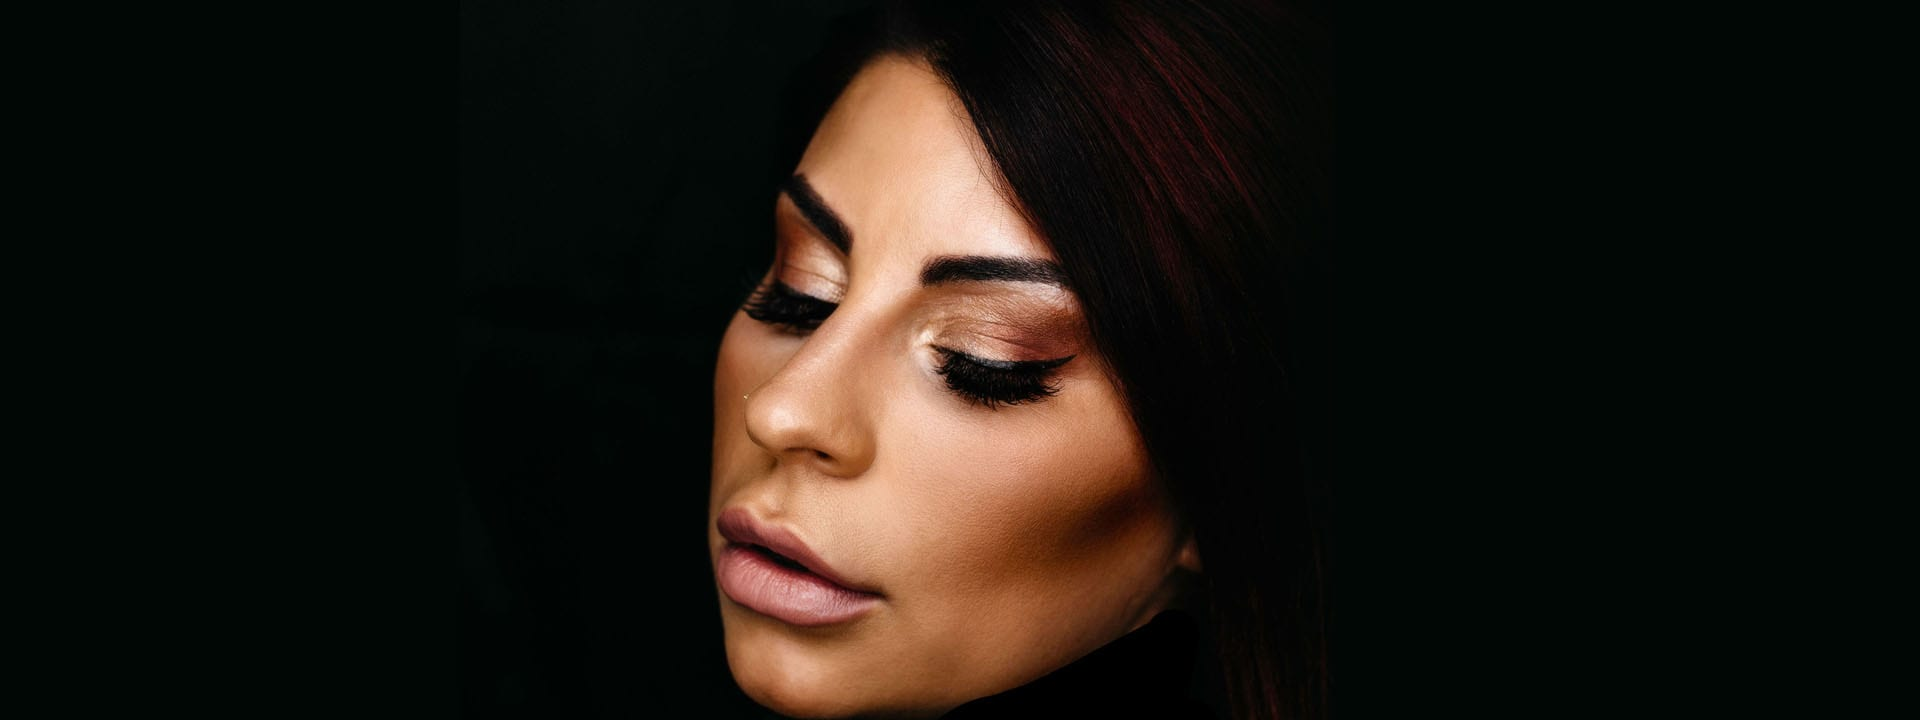 About Us – Lash and Brow Academy